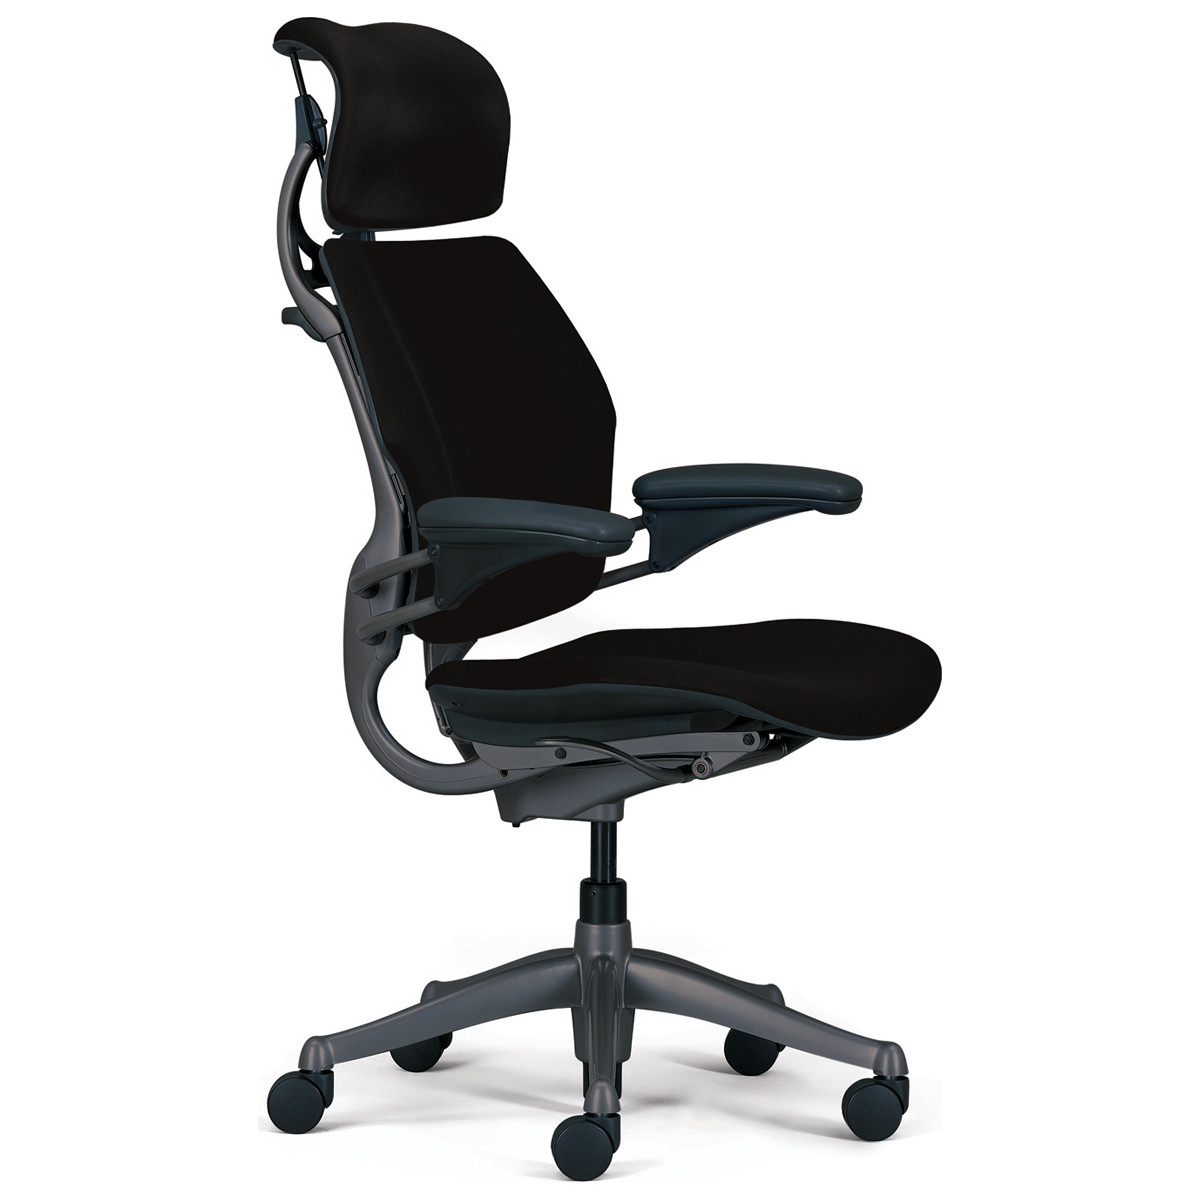 Humanscale freedom chair leather -  Humanscale Freedom Chair Image 1 Loading Zoom